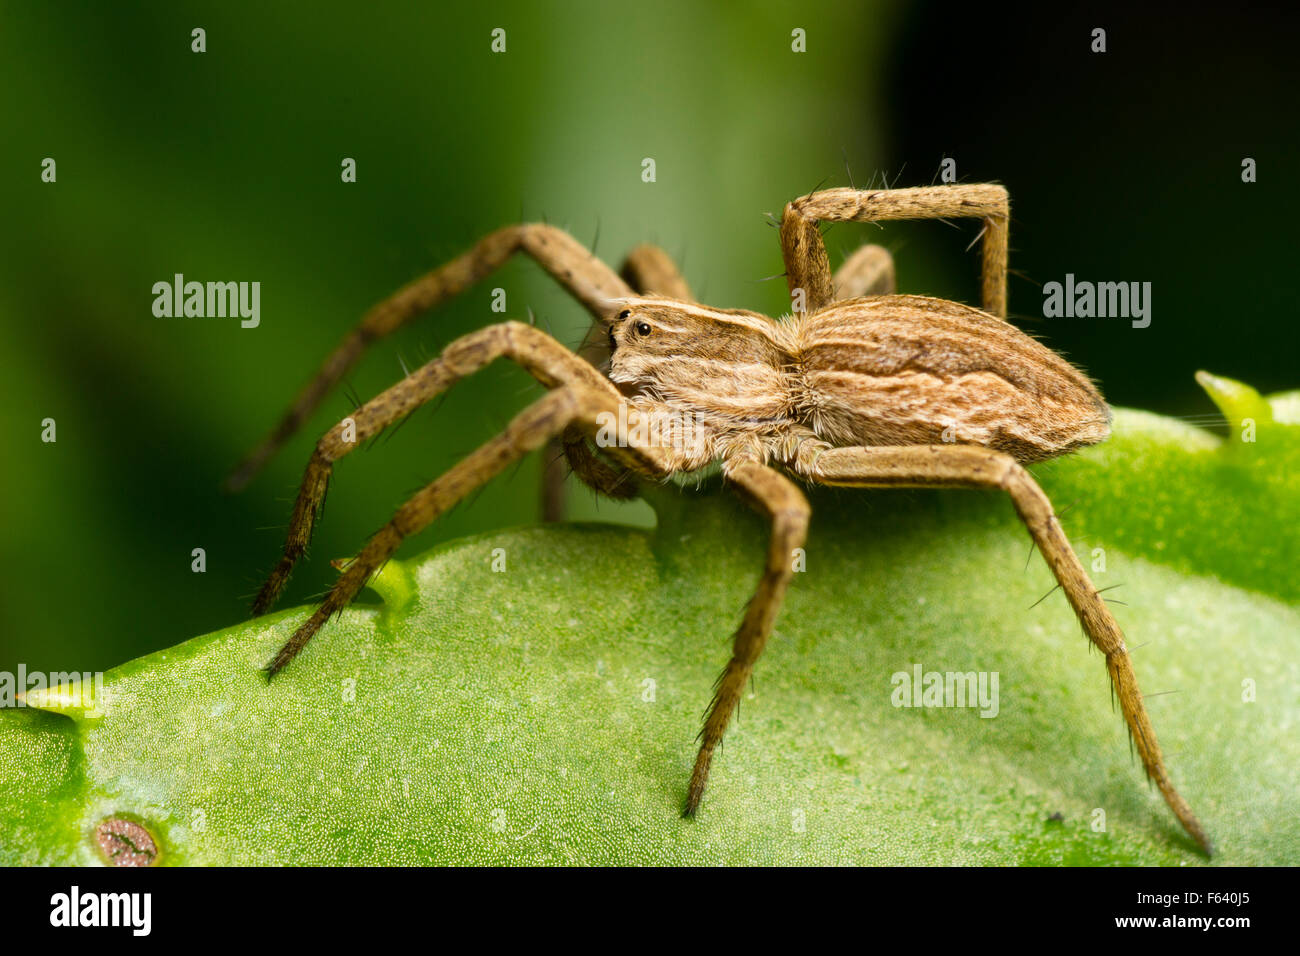 Side view of a female Nursery web spider, Pisaura mirabilis, in a Plymouth garden - Stock Image